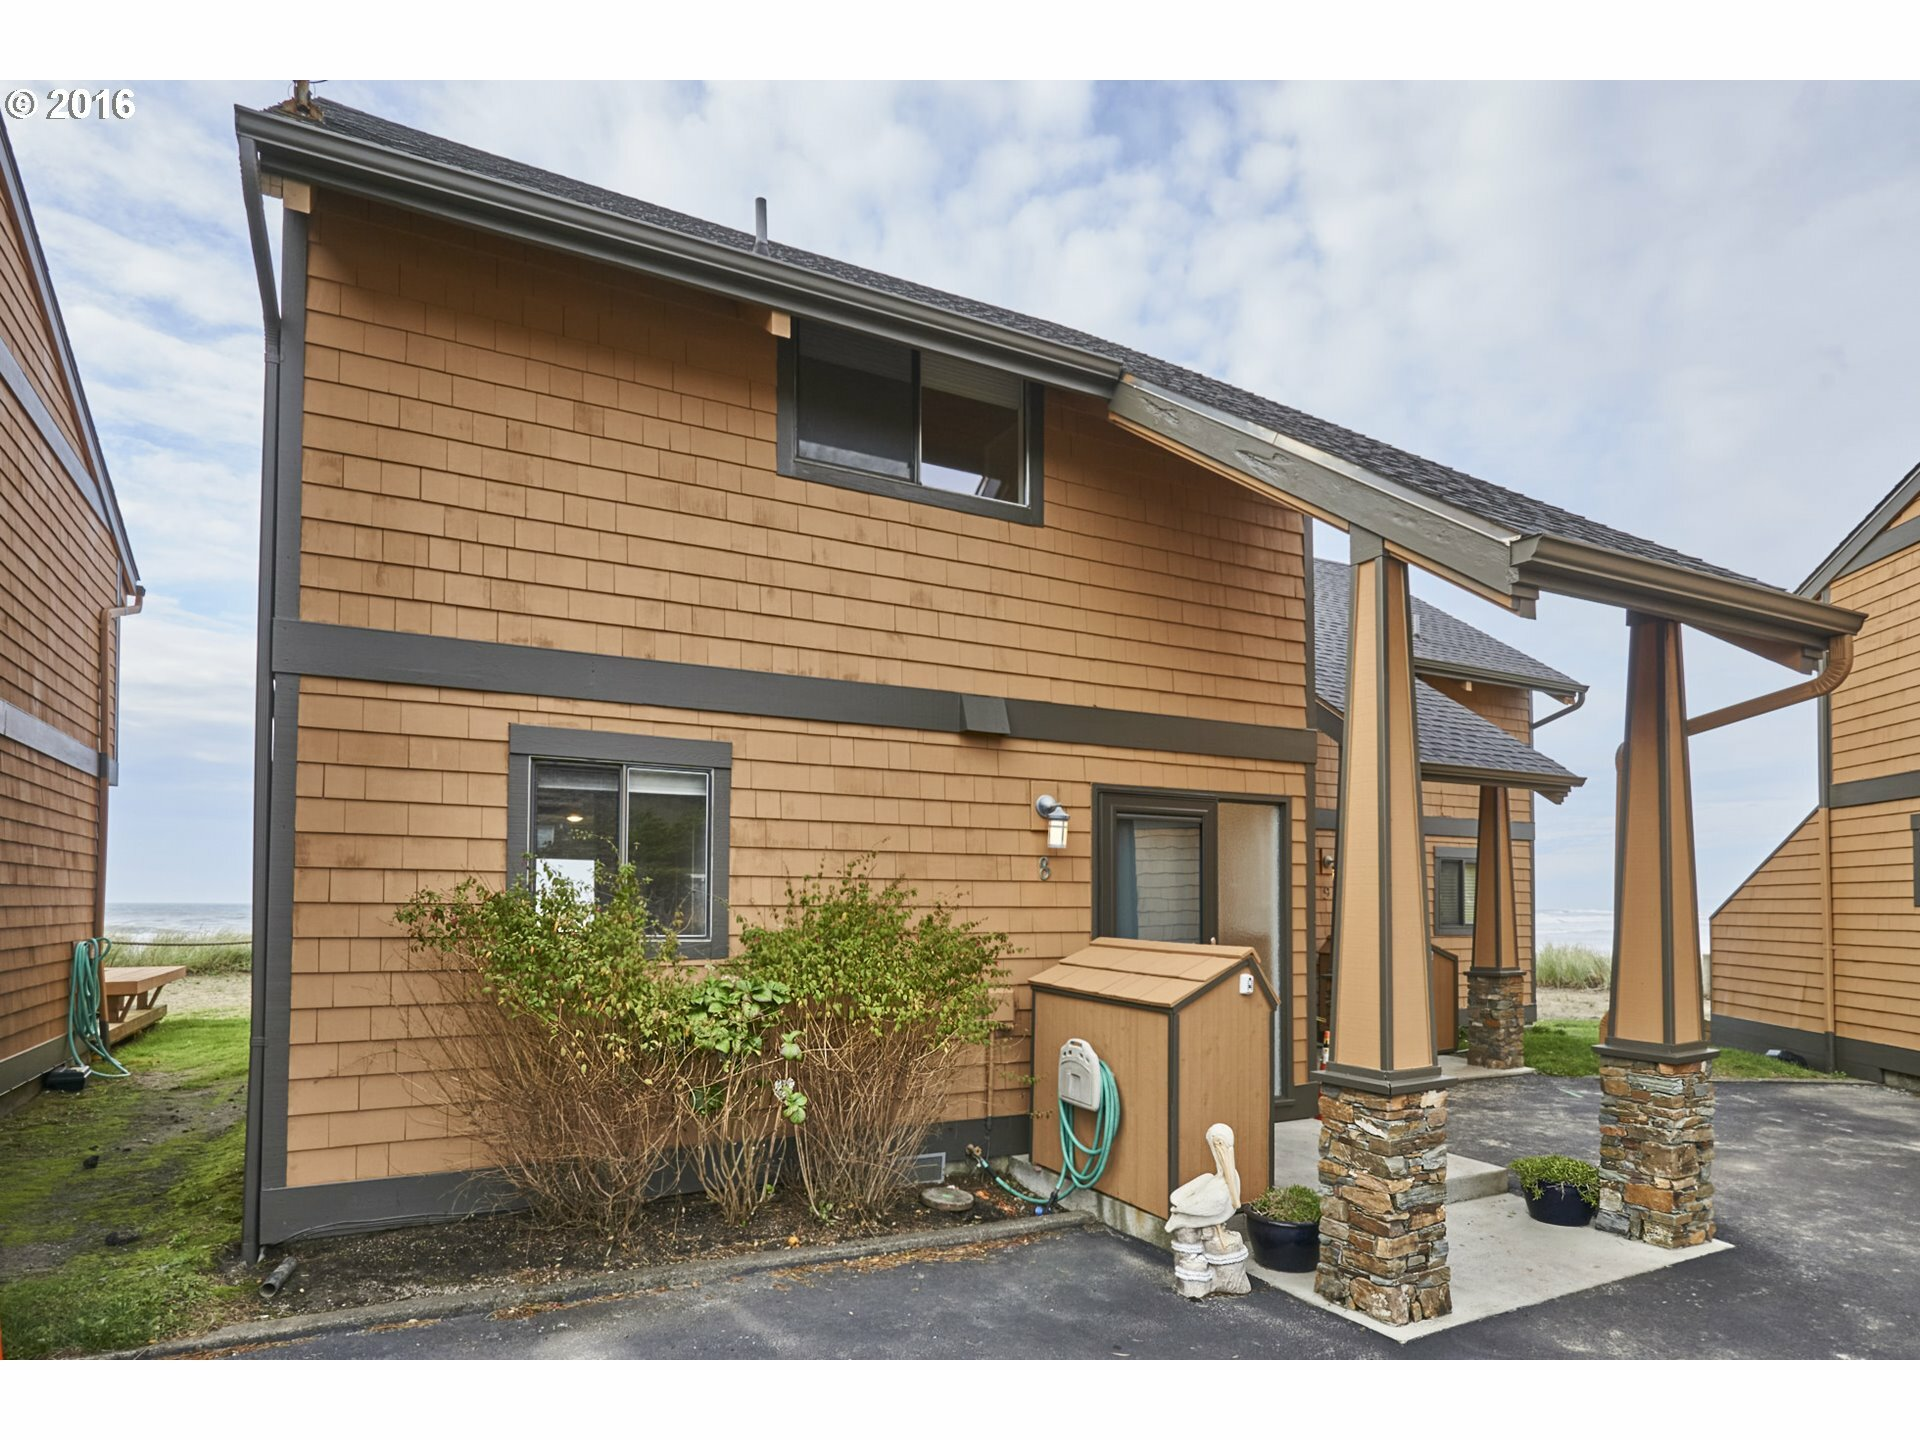 48060 Breakers Blvd 8, Neskowin, OR - USA (photo 1)